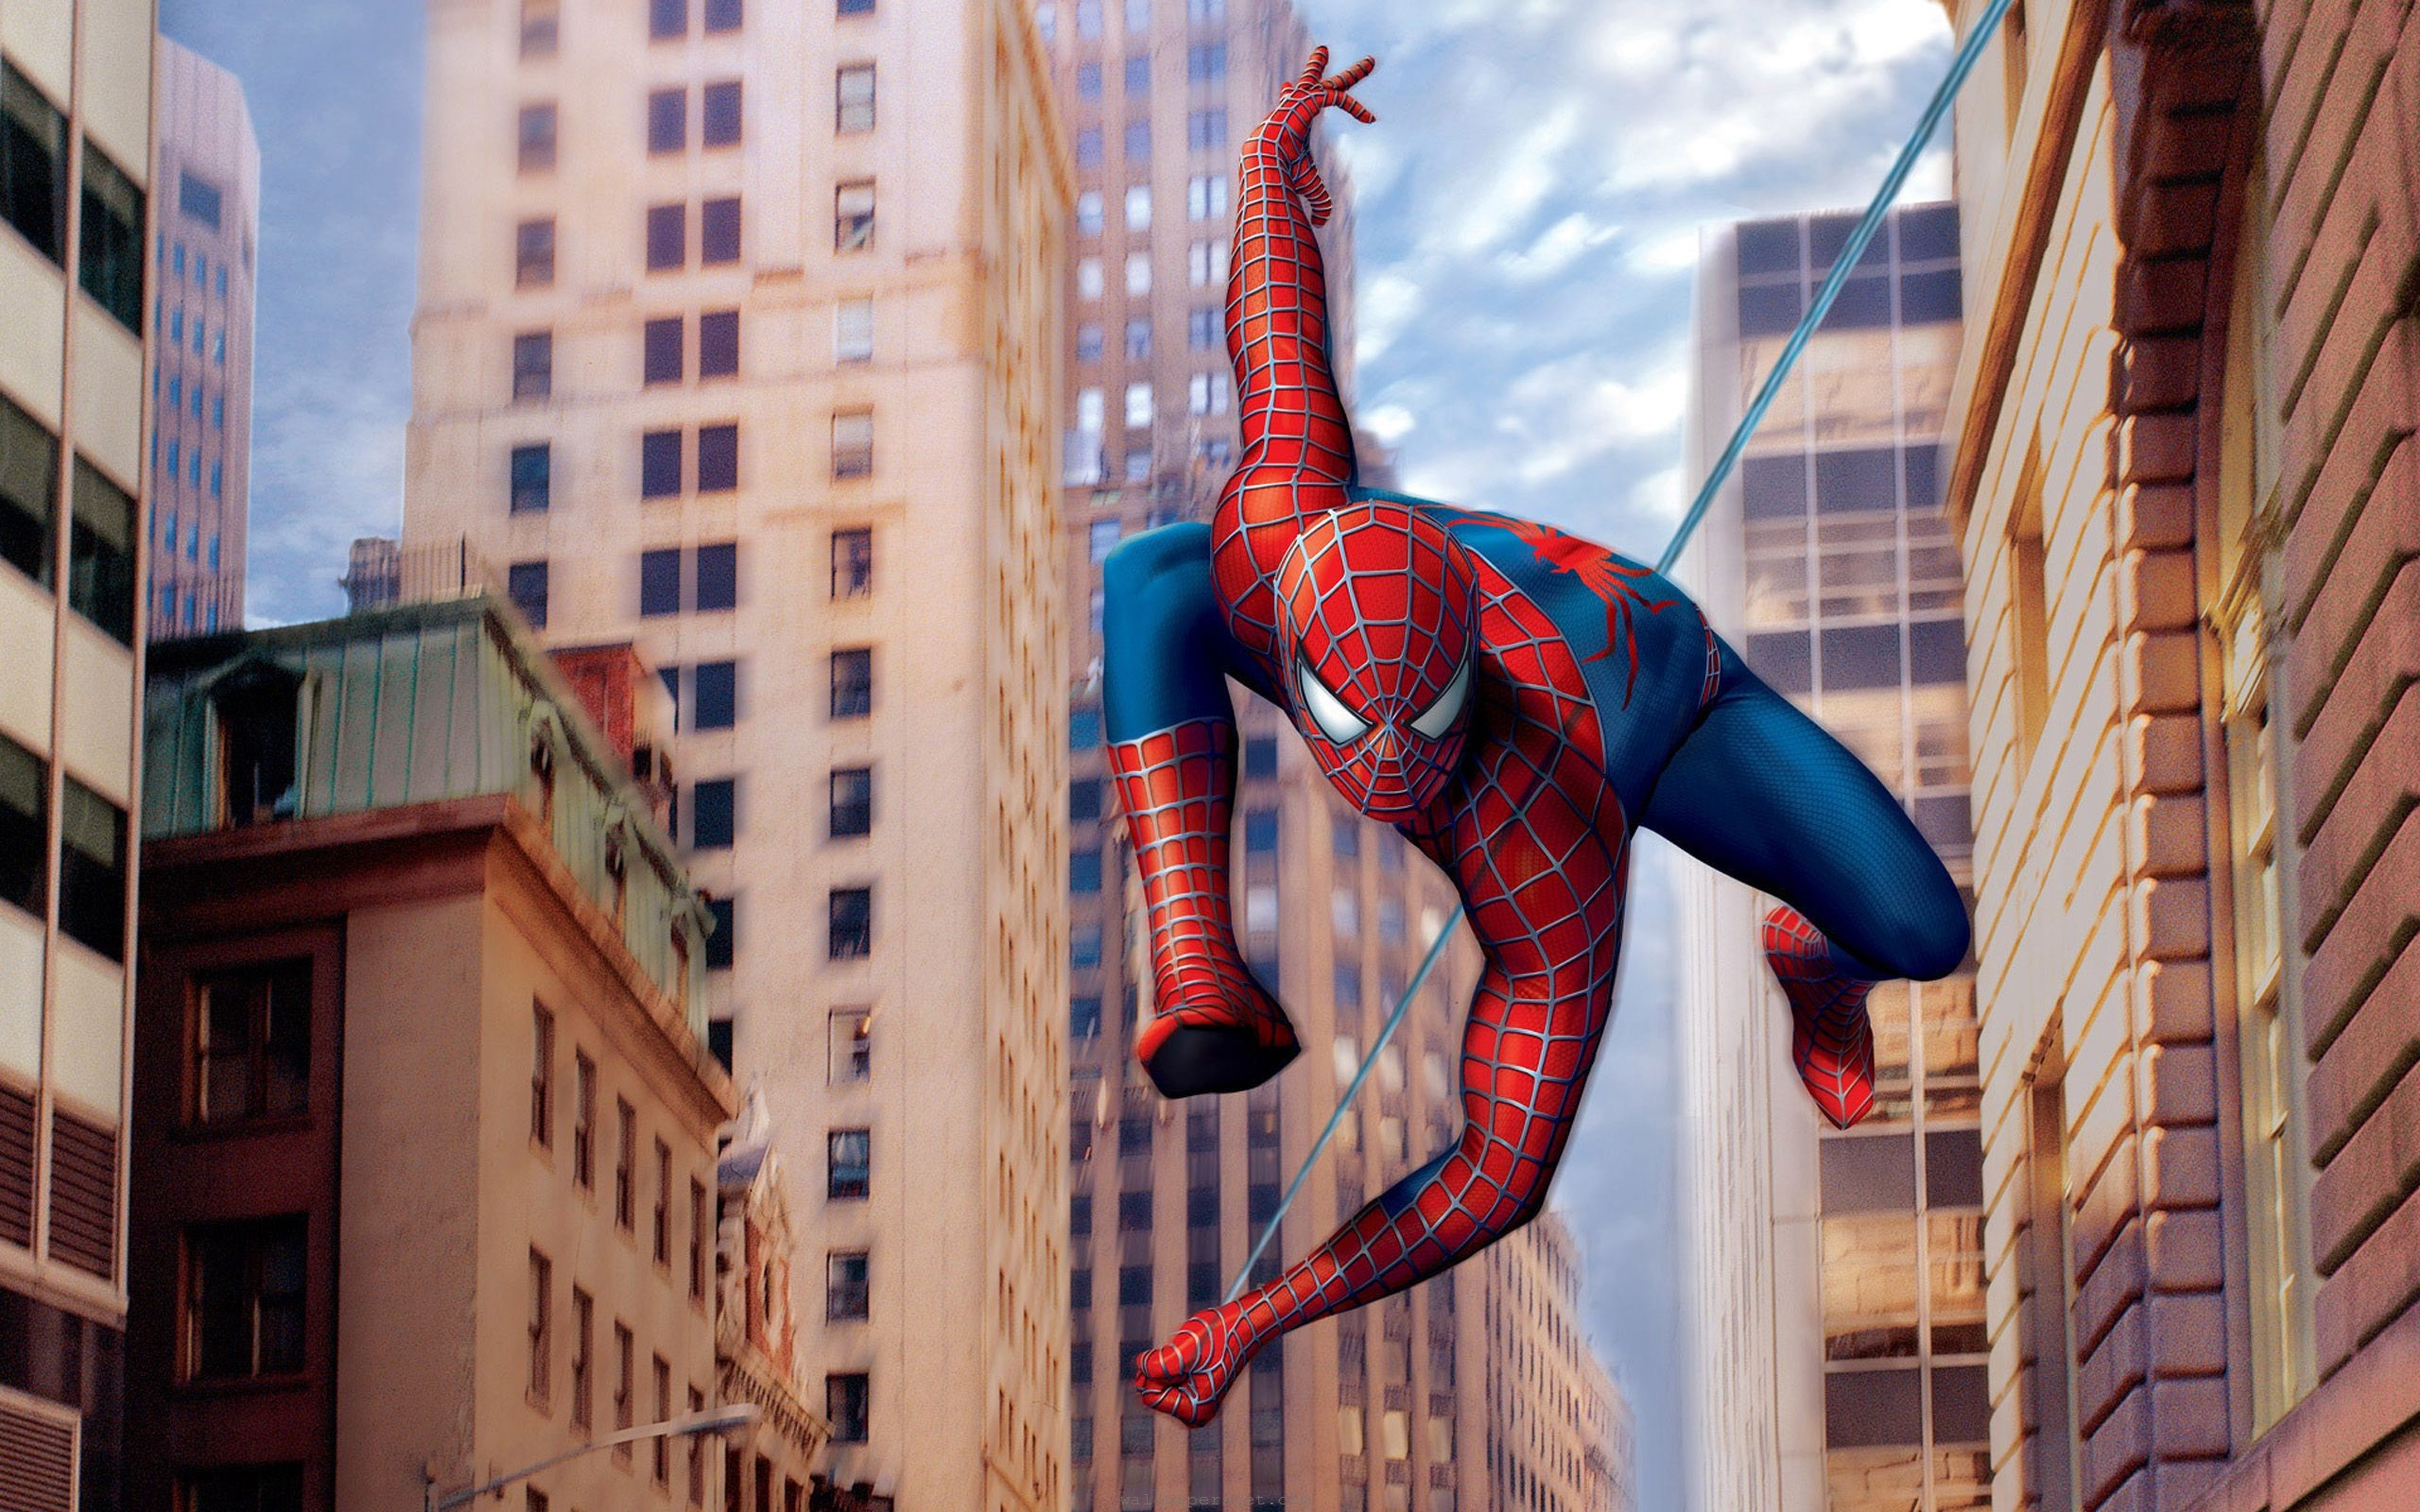 Sony deal official: Marvel Studios gets rights to future Spider-Man movies  - Spider-Man News